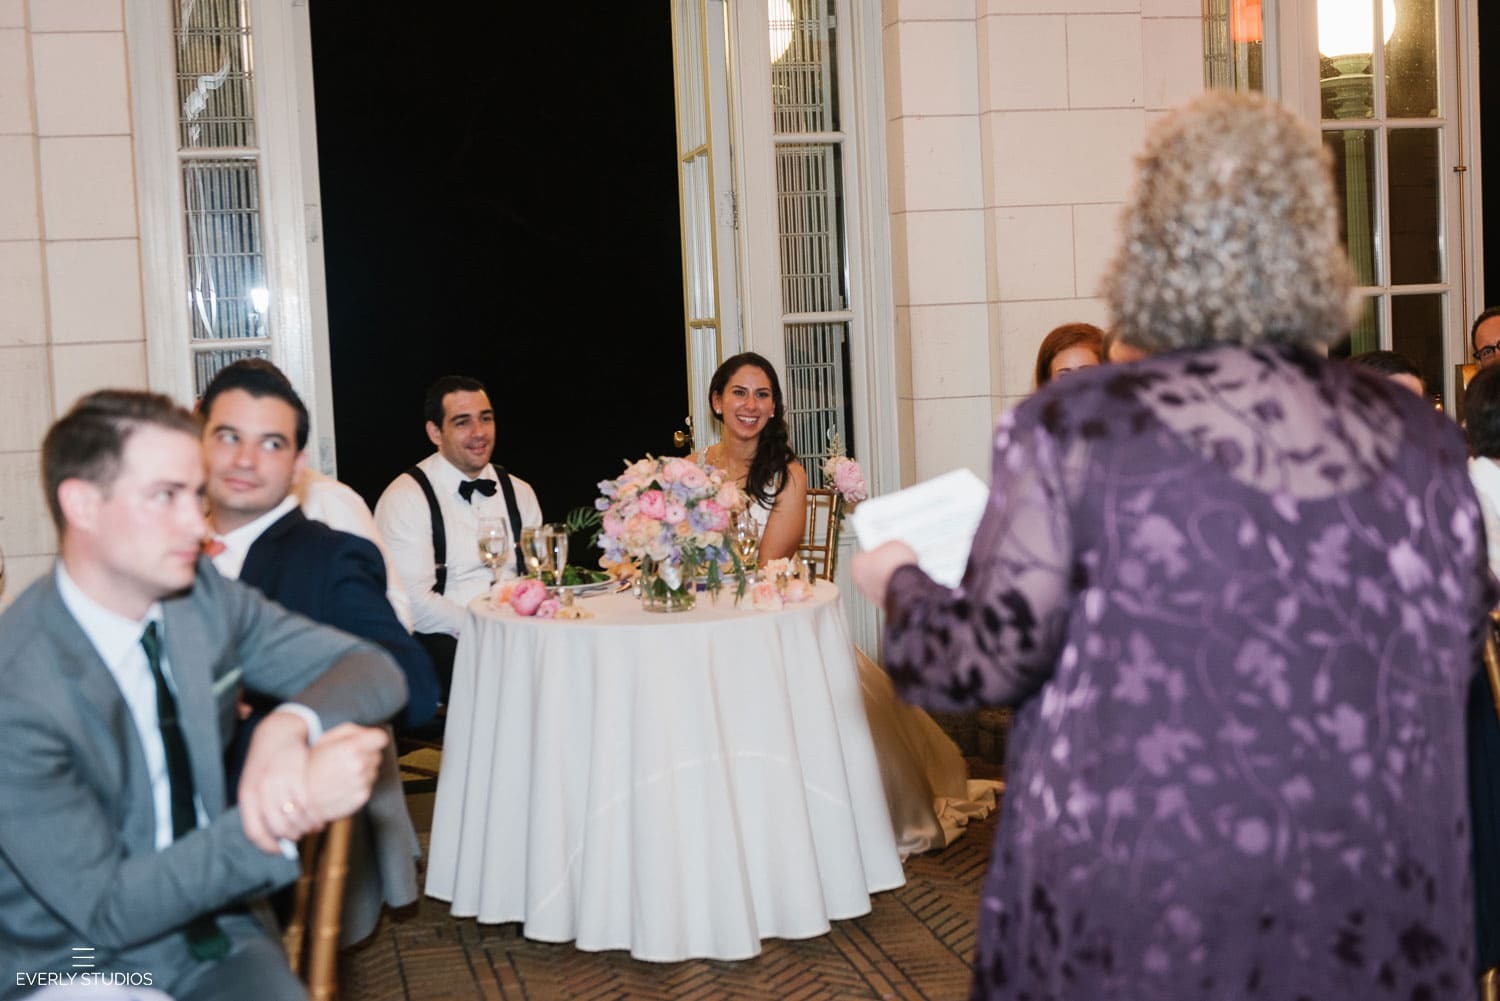 Prospect Park Boathouse wedding reception